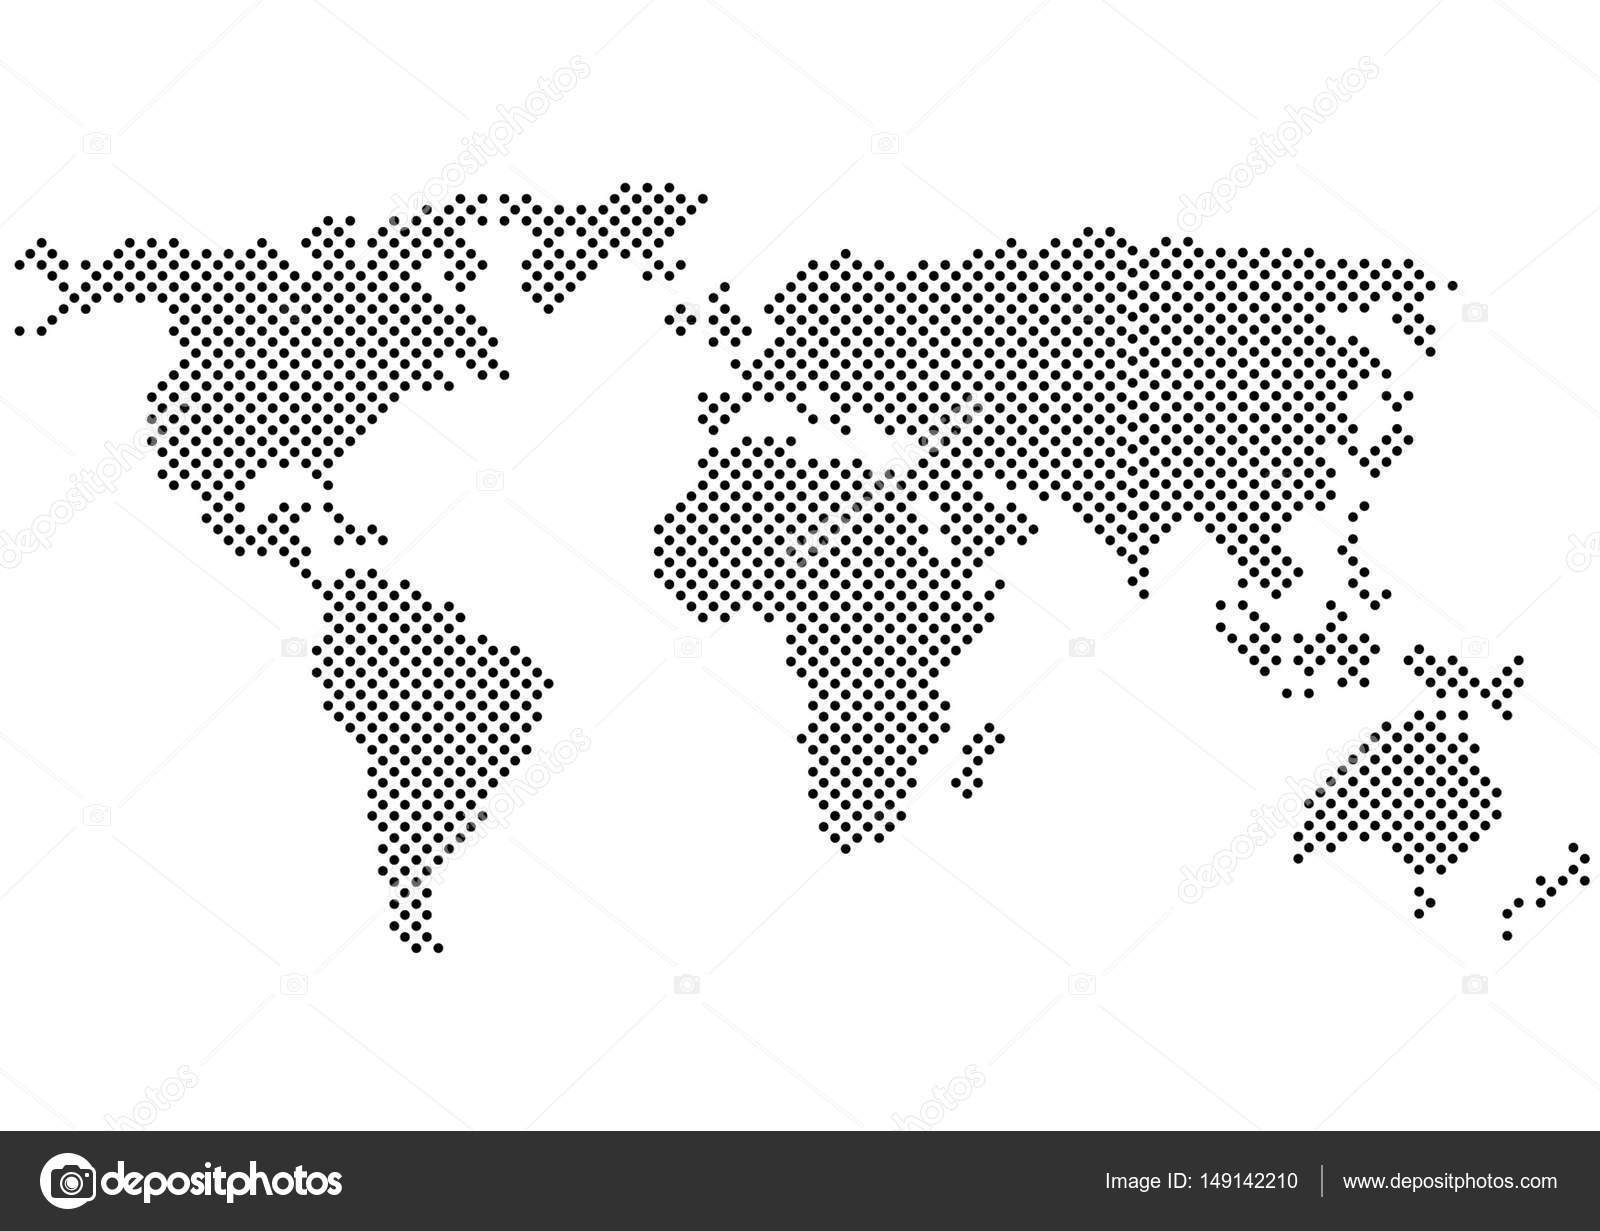 Map Of World Silhouette.Vector Color Halftone World Map Silhouette Stock Vector C Pizla09